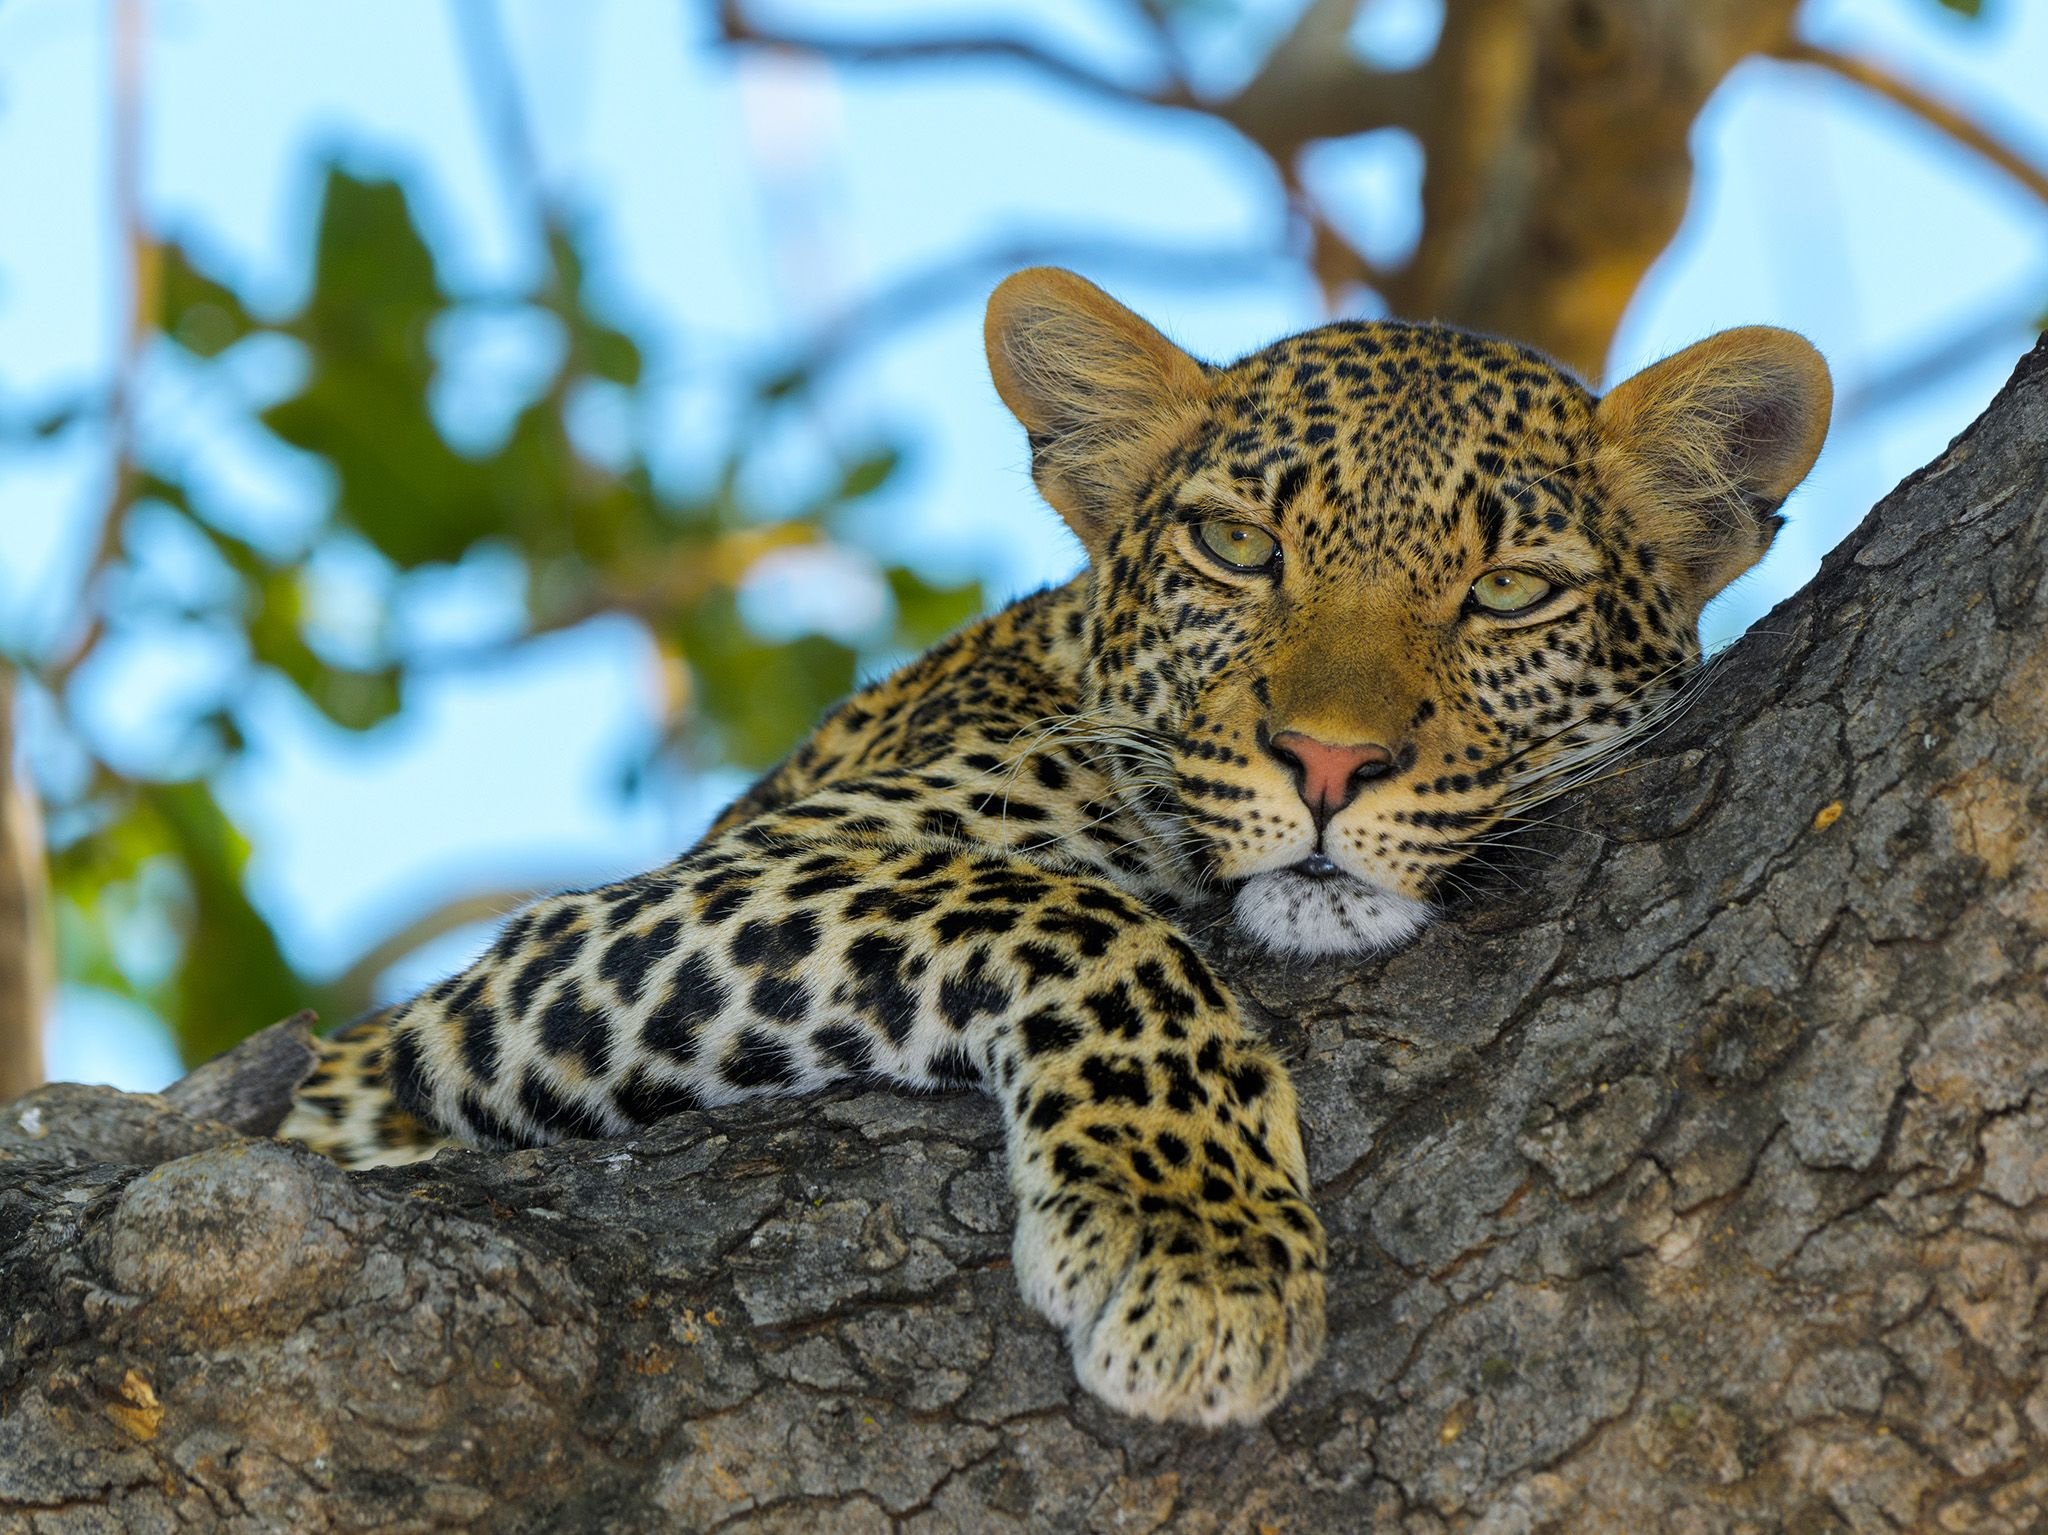 Ruaha National Park, Tanzania:  Young male leopard in tree. This image is from Lion Kingdom. [Foto del giorno - gennaio 2018]